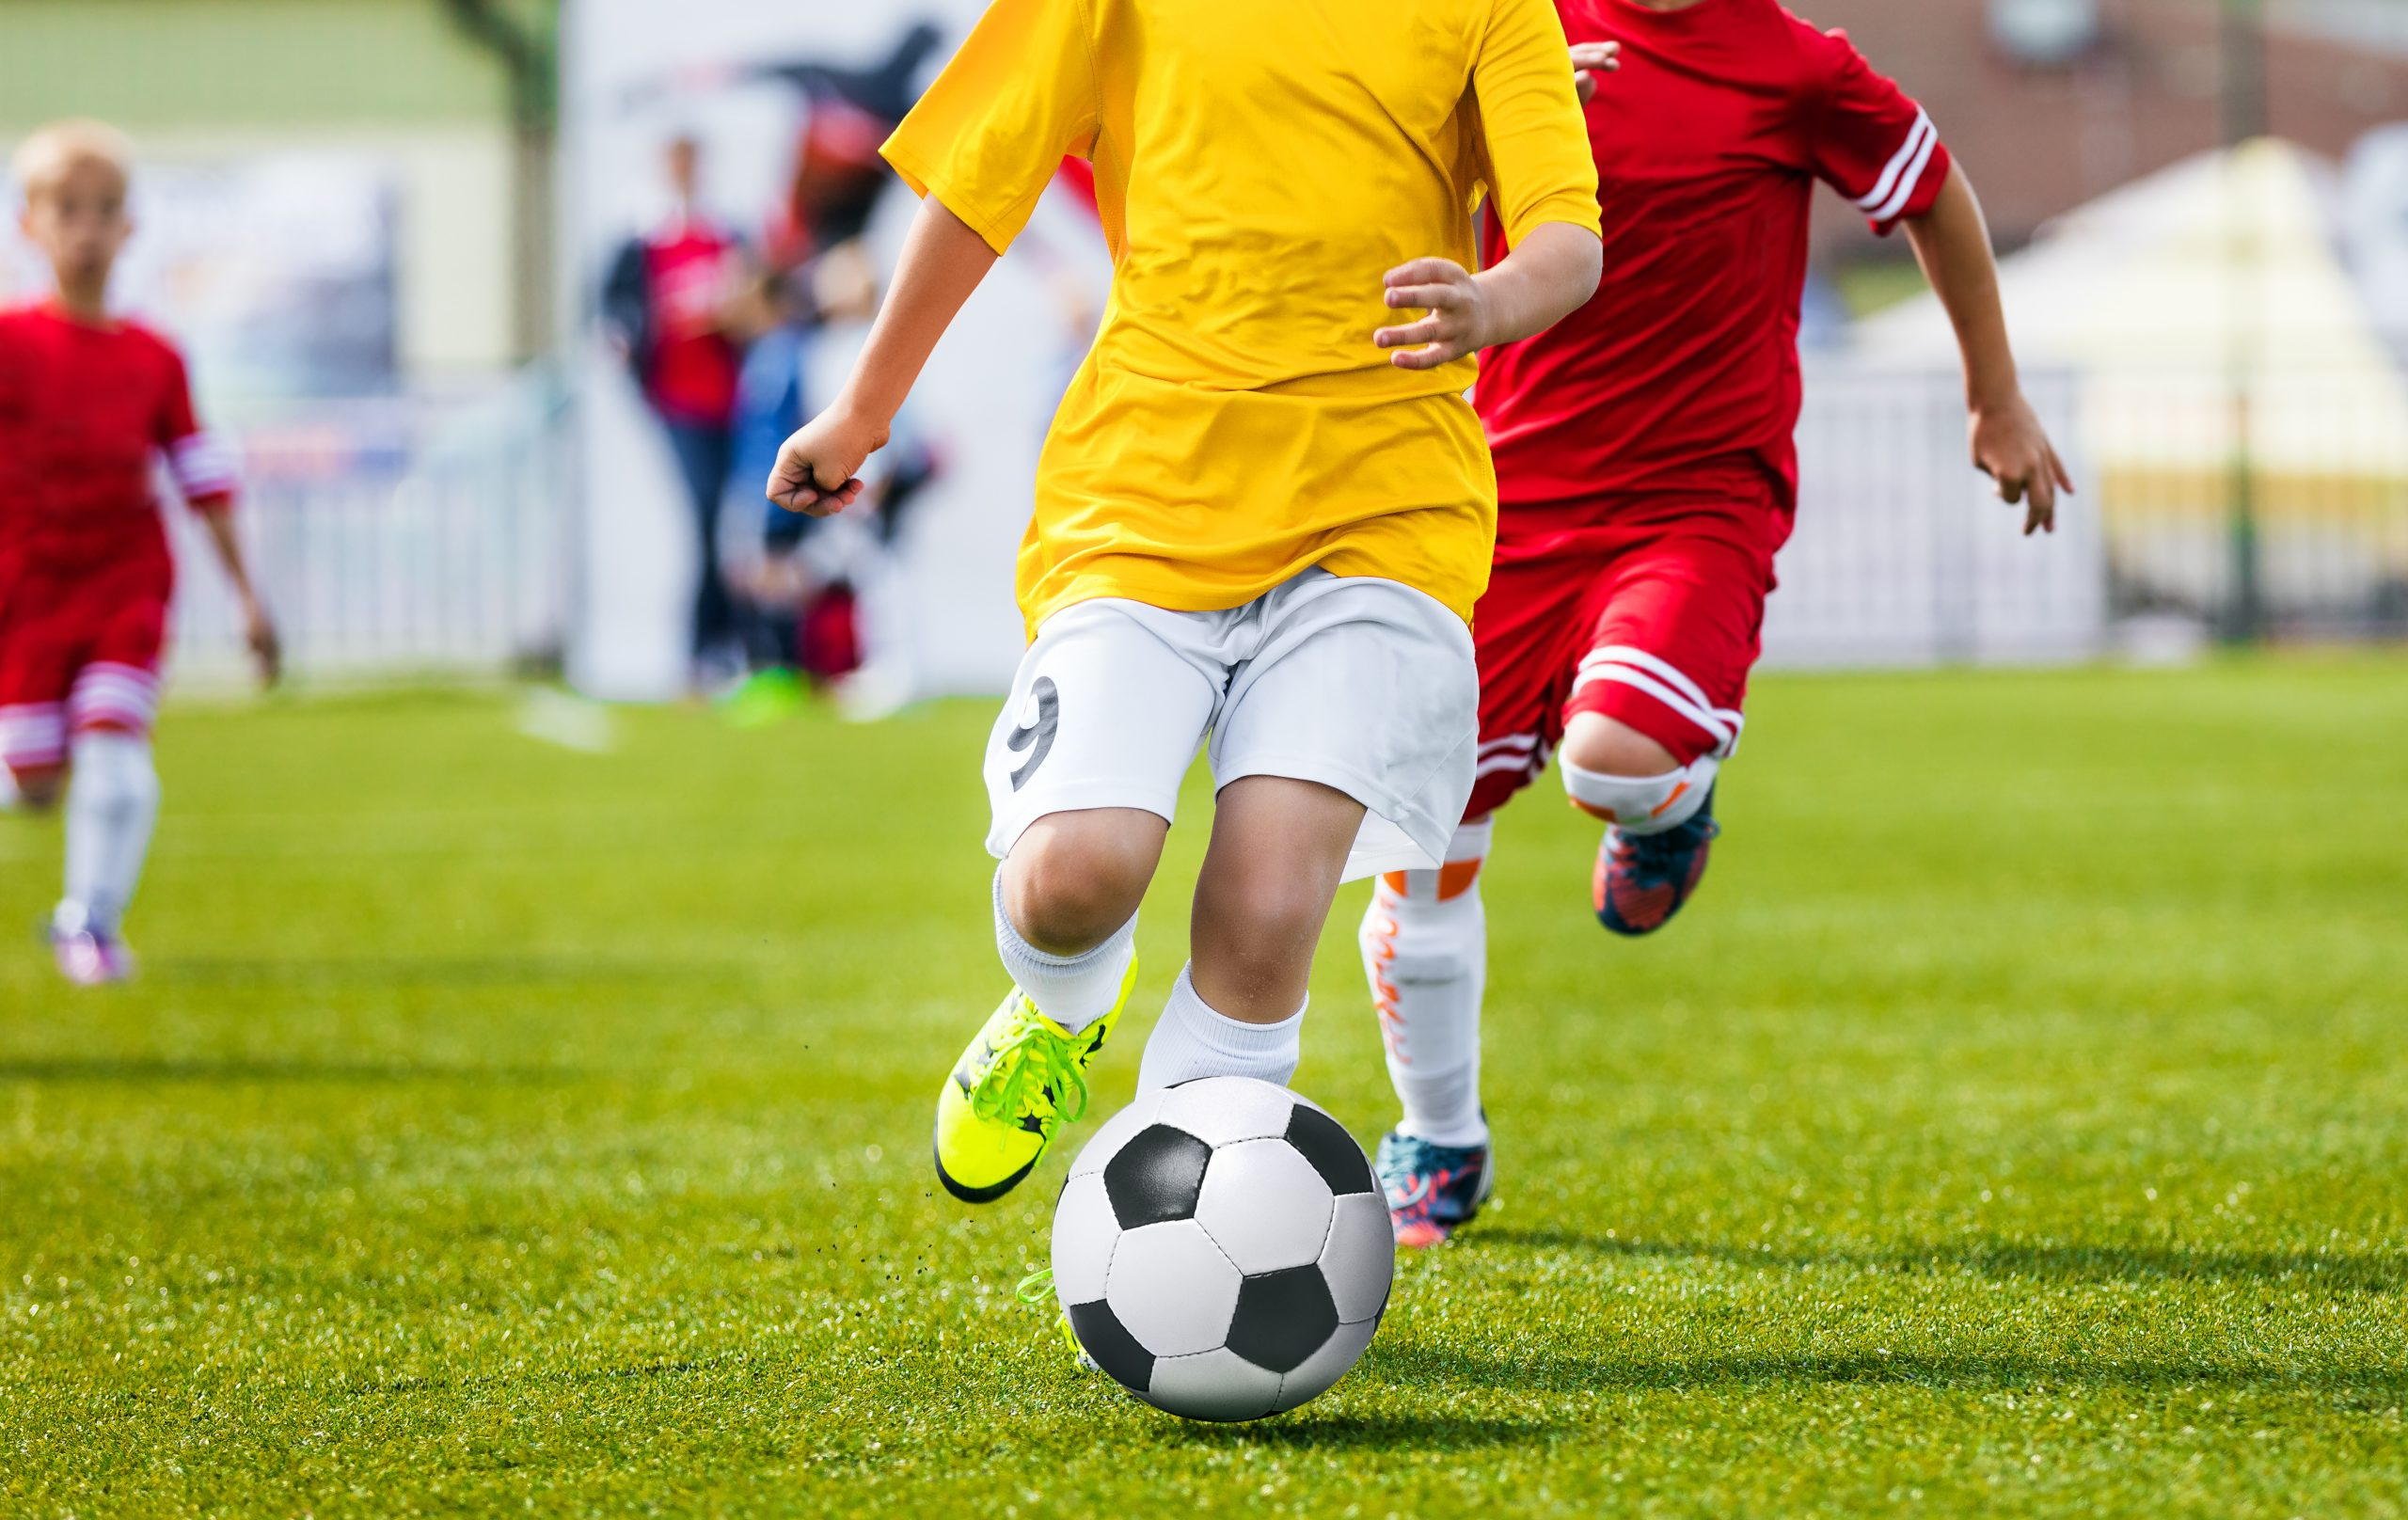 Running Youth Soccer Football Players. Boys Kicking Soccer Match. Children Football Players Running After the Ball. Kids Sport Duel